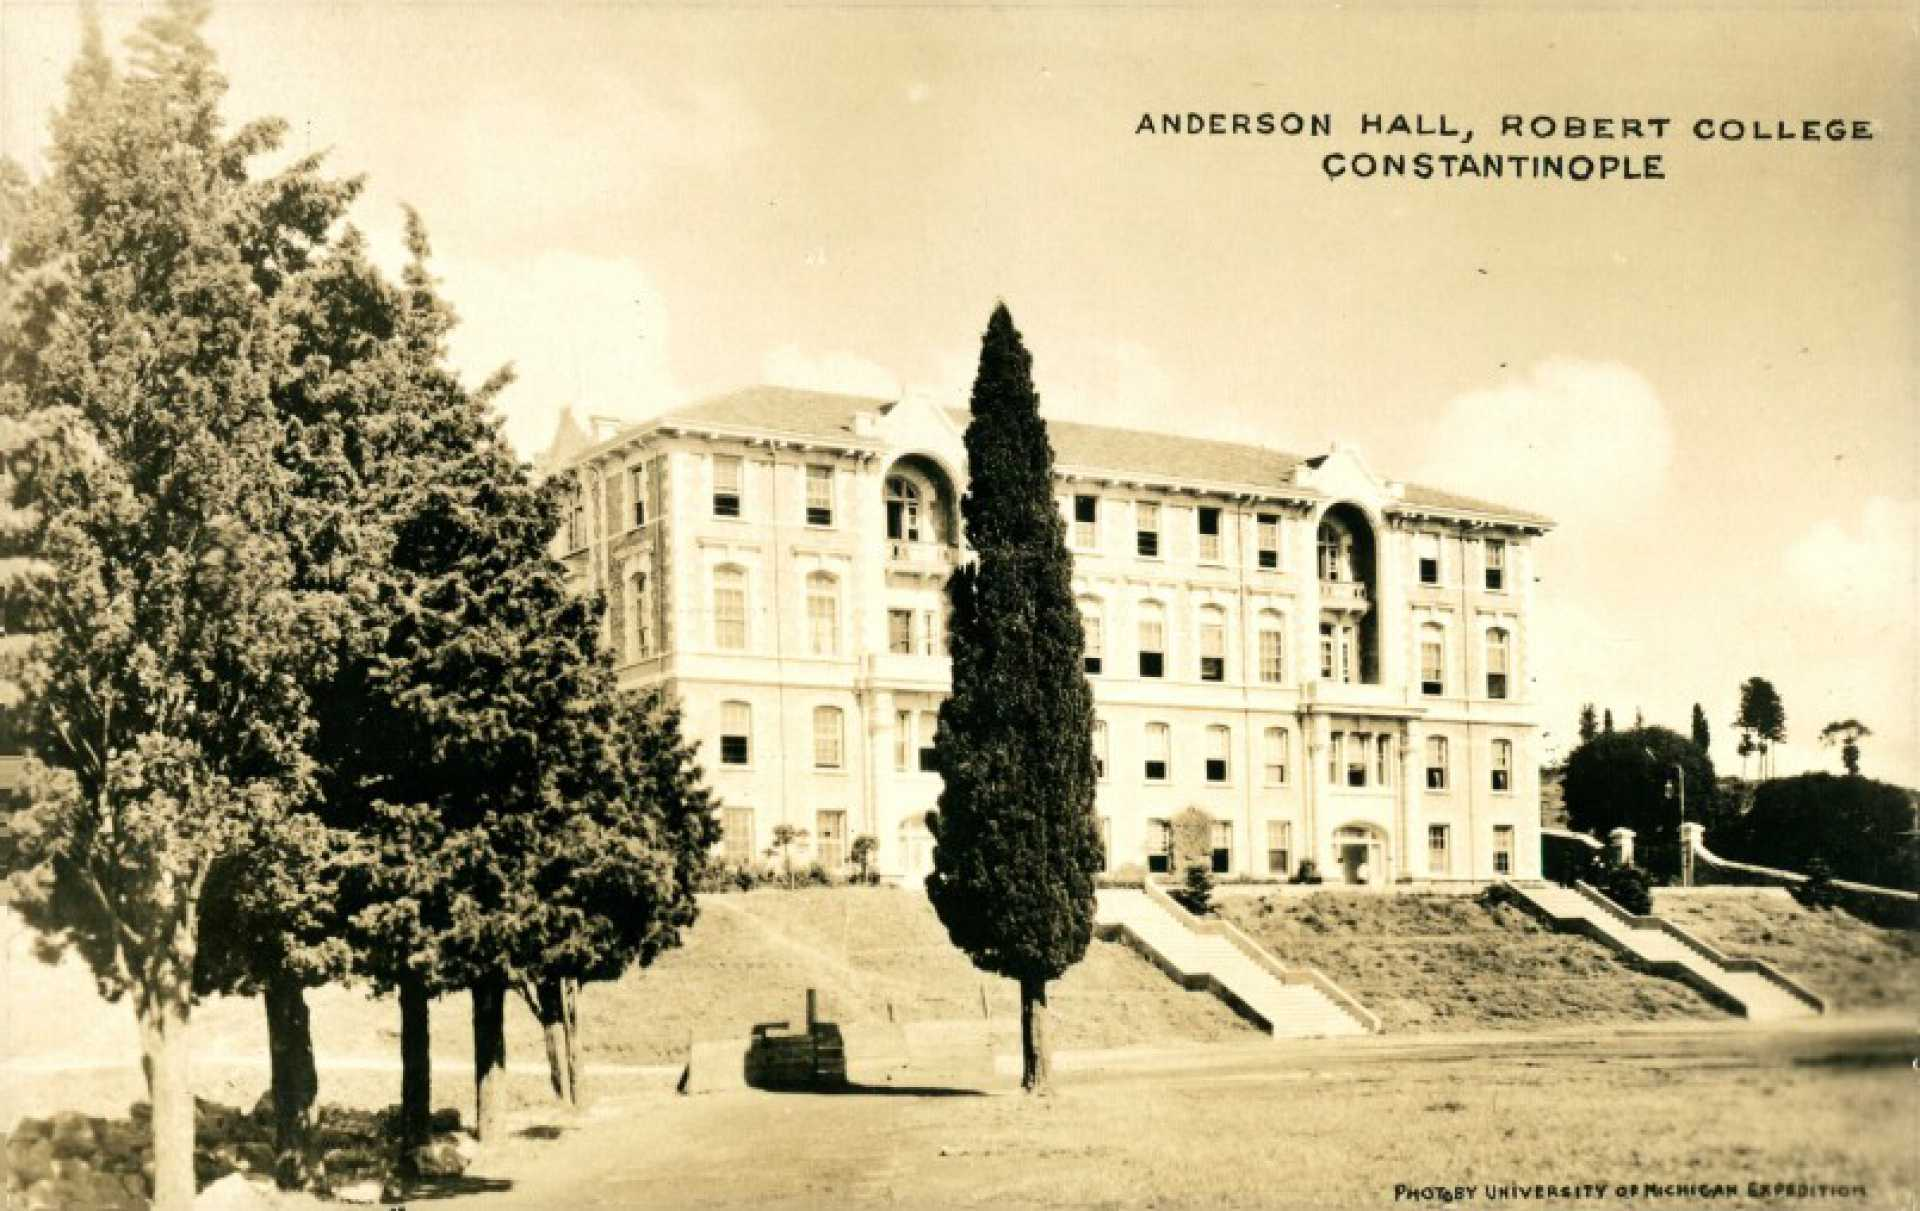 Anderson Hall. Robert College